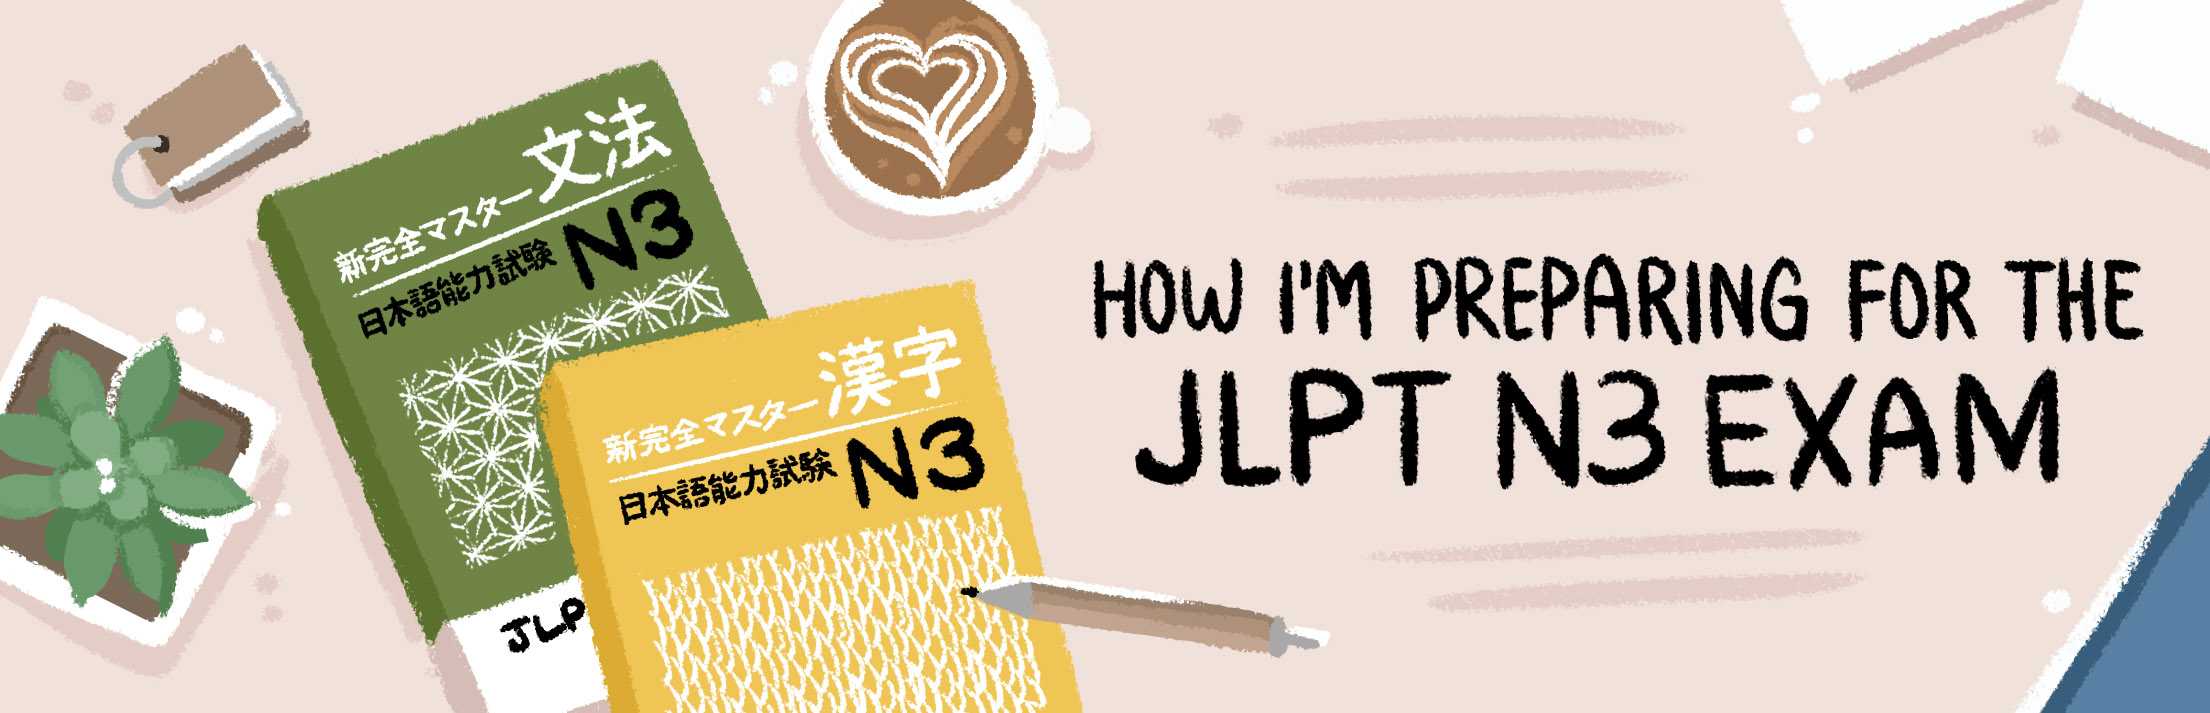 Japanese Study Techniques: How I'm Preparing for the JLPT N3